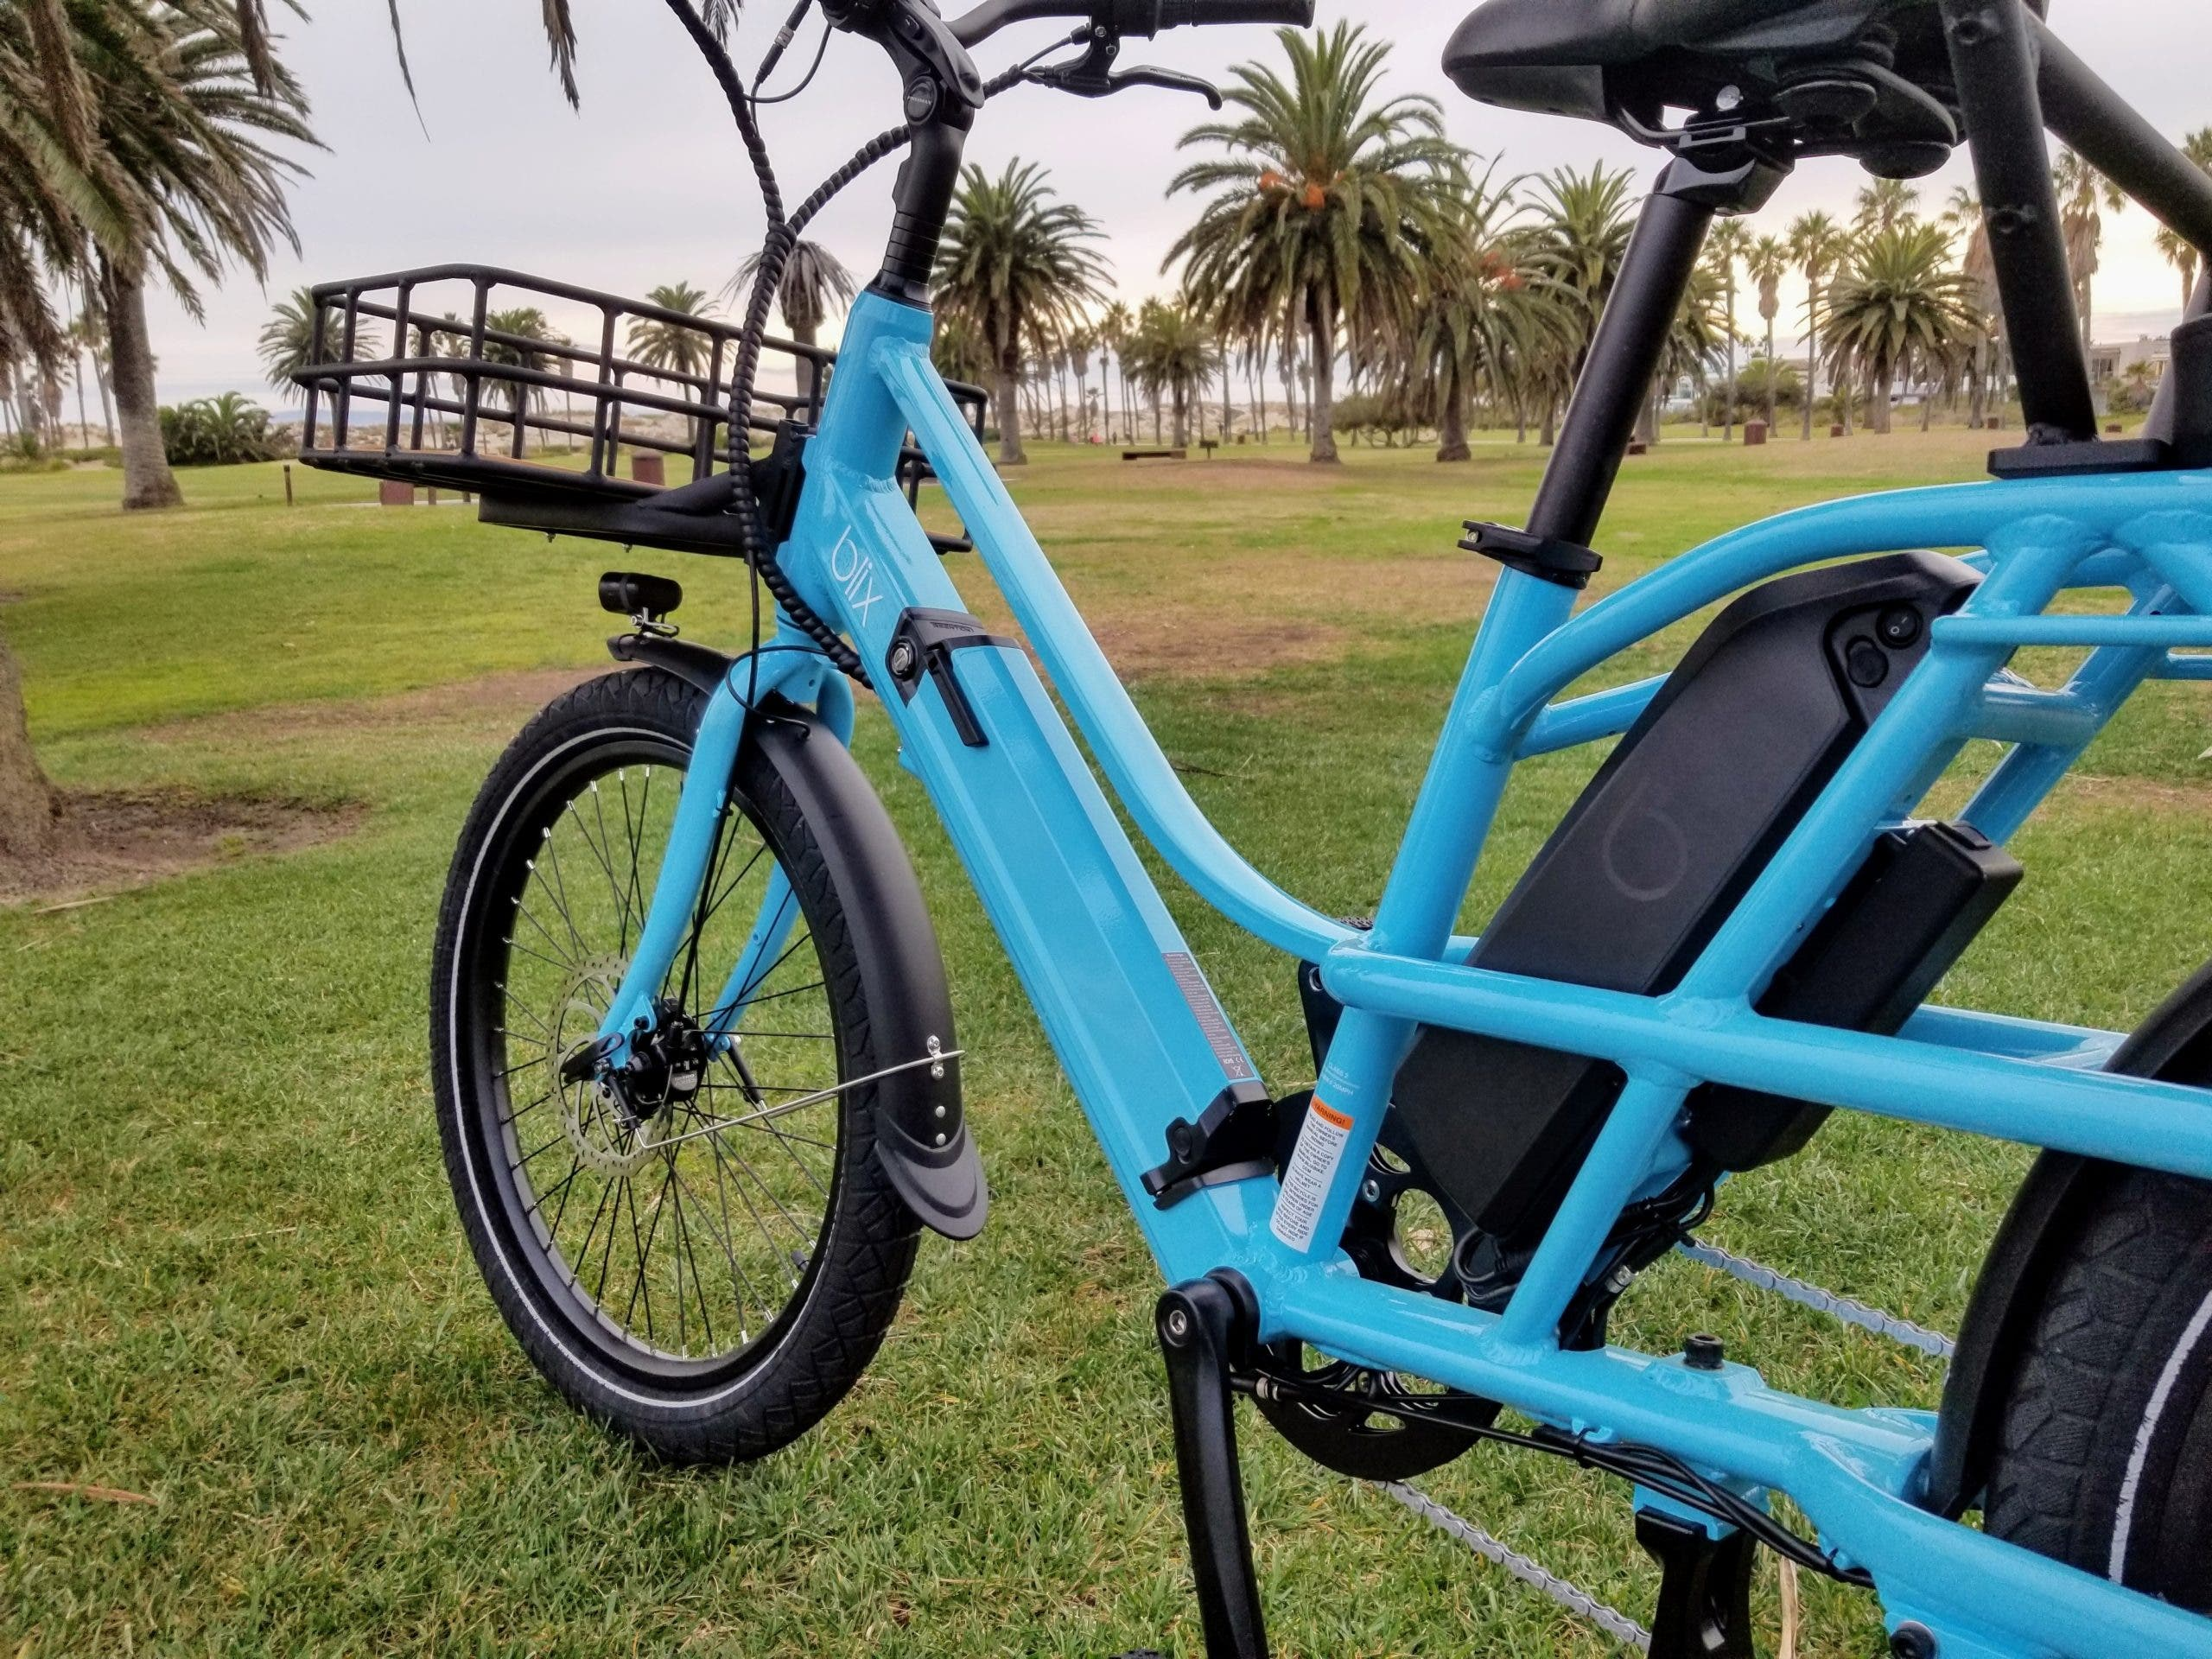 The Blix Packa electric cargo bike